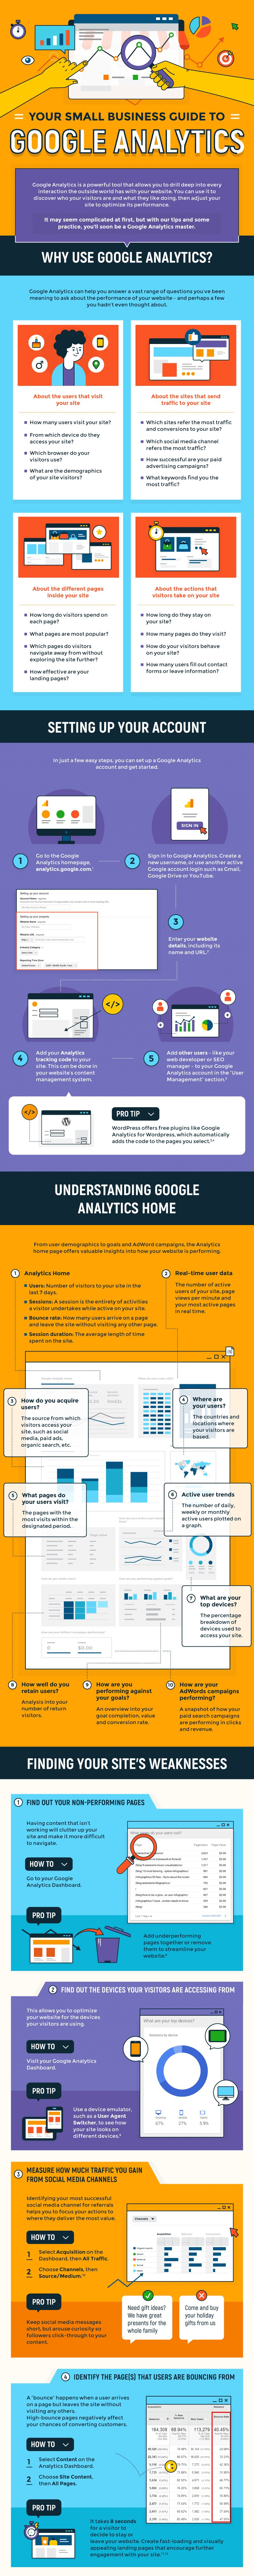 google-analytics-for-small-businesses